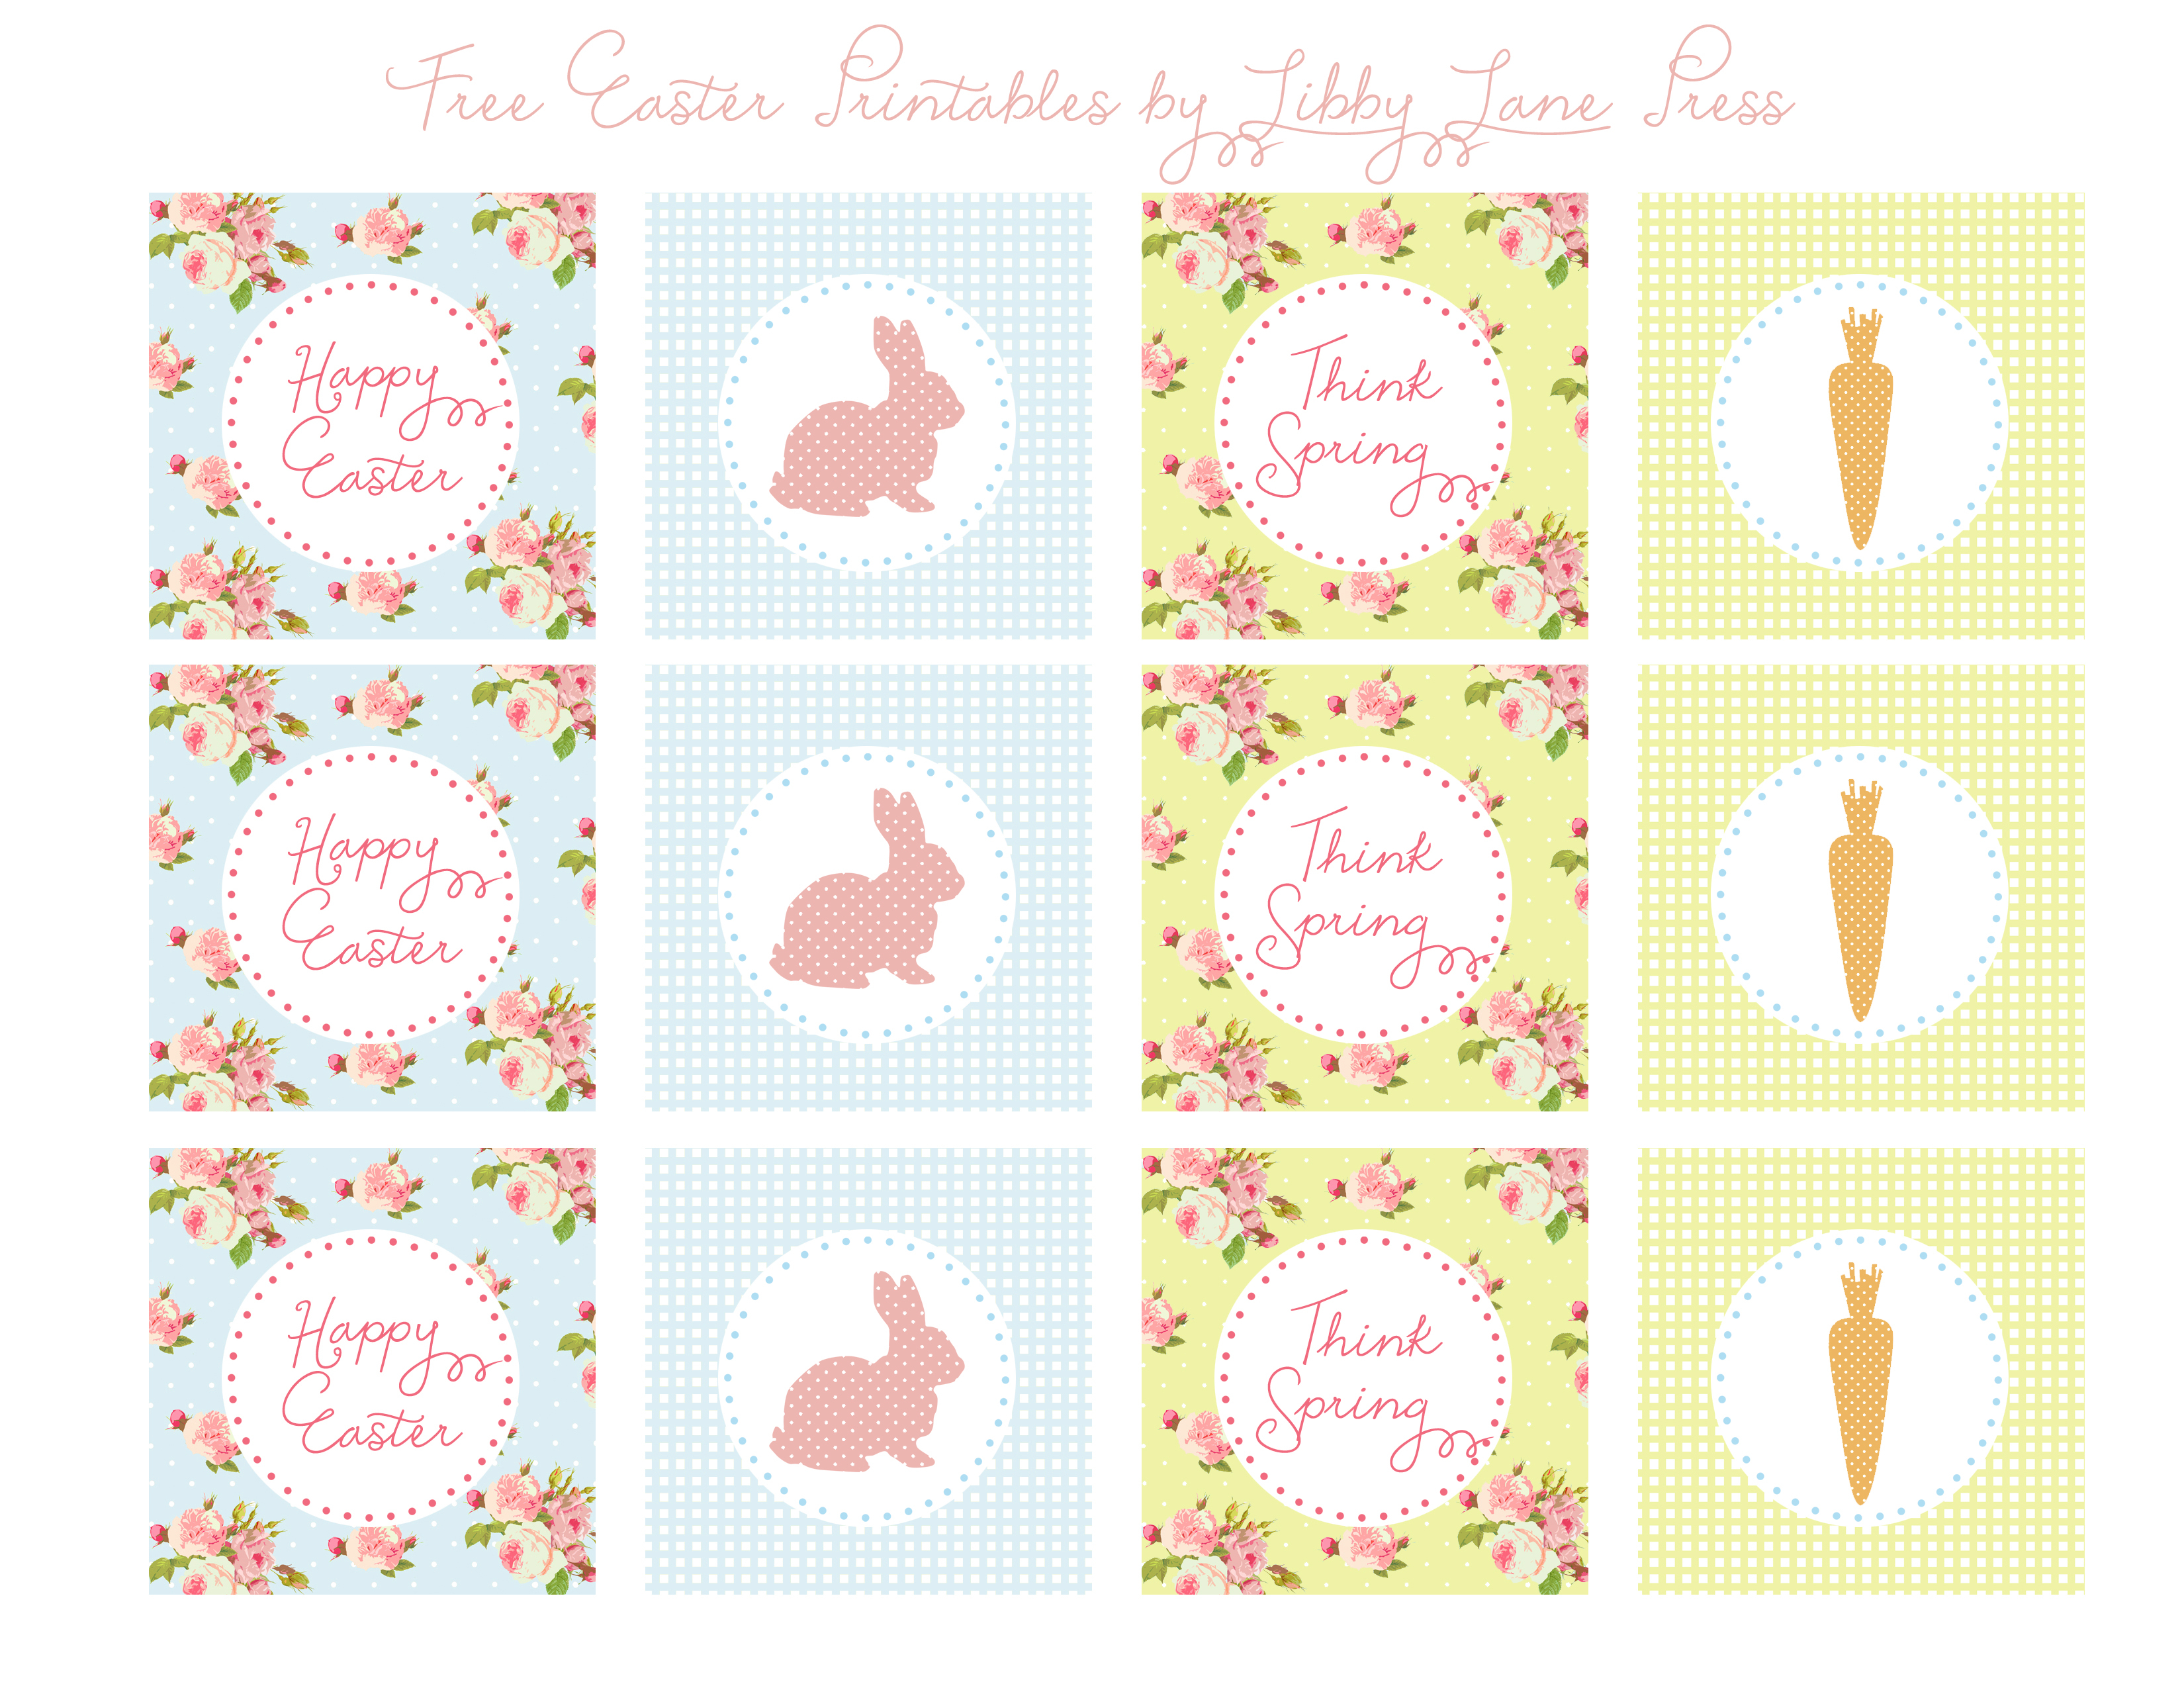 Easter Free Printables-Party Circles   The Party Teacher - Free Printable Party Circles